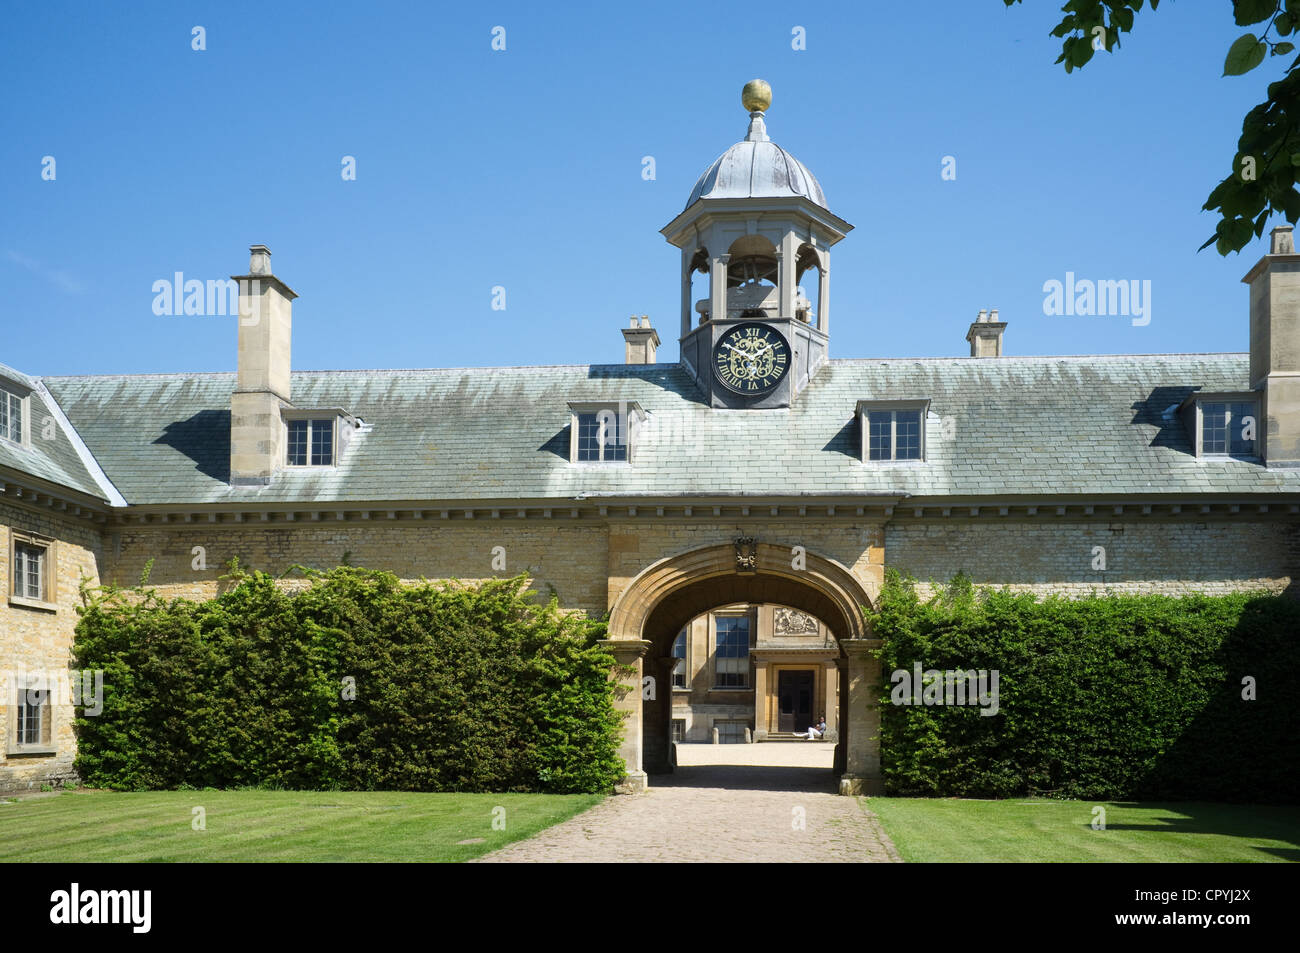 Belton Grade 1 Listed Country House Grantham Lincolnshire -2 - Stock Image